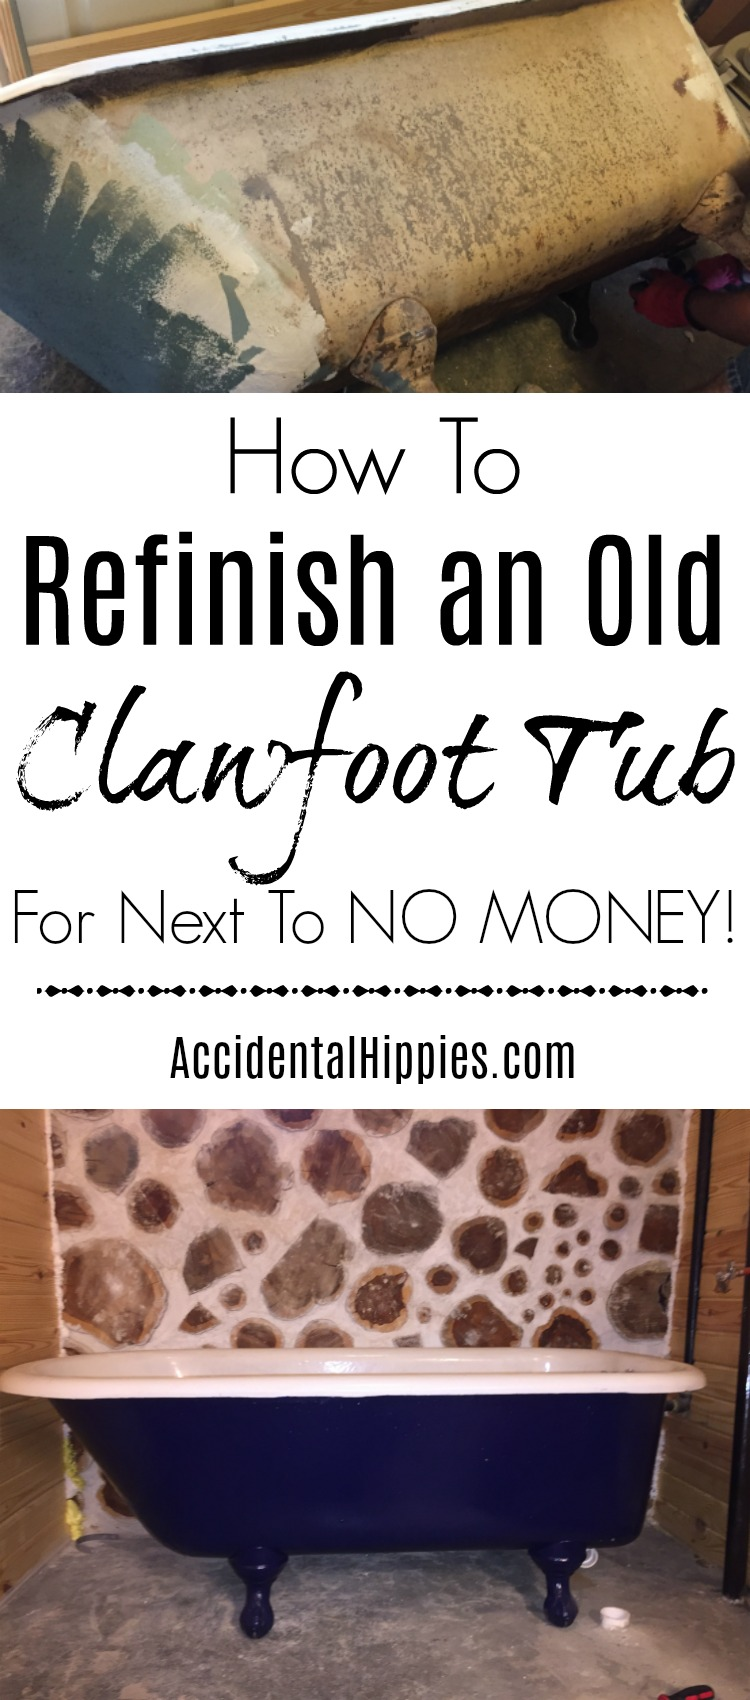 We saved thousands of dollars by finding a used clawfoot tub and refinishing it ourselves! This is everything we learned in the process.